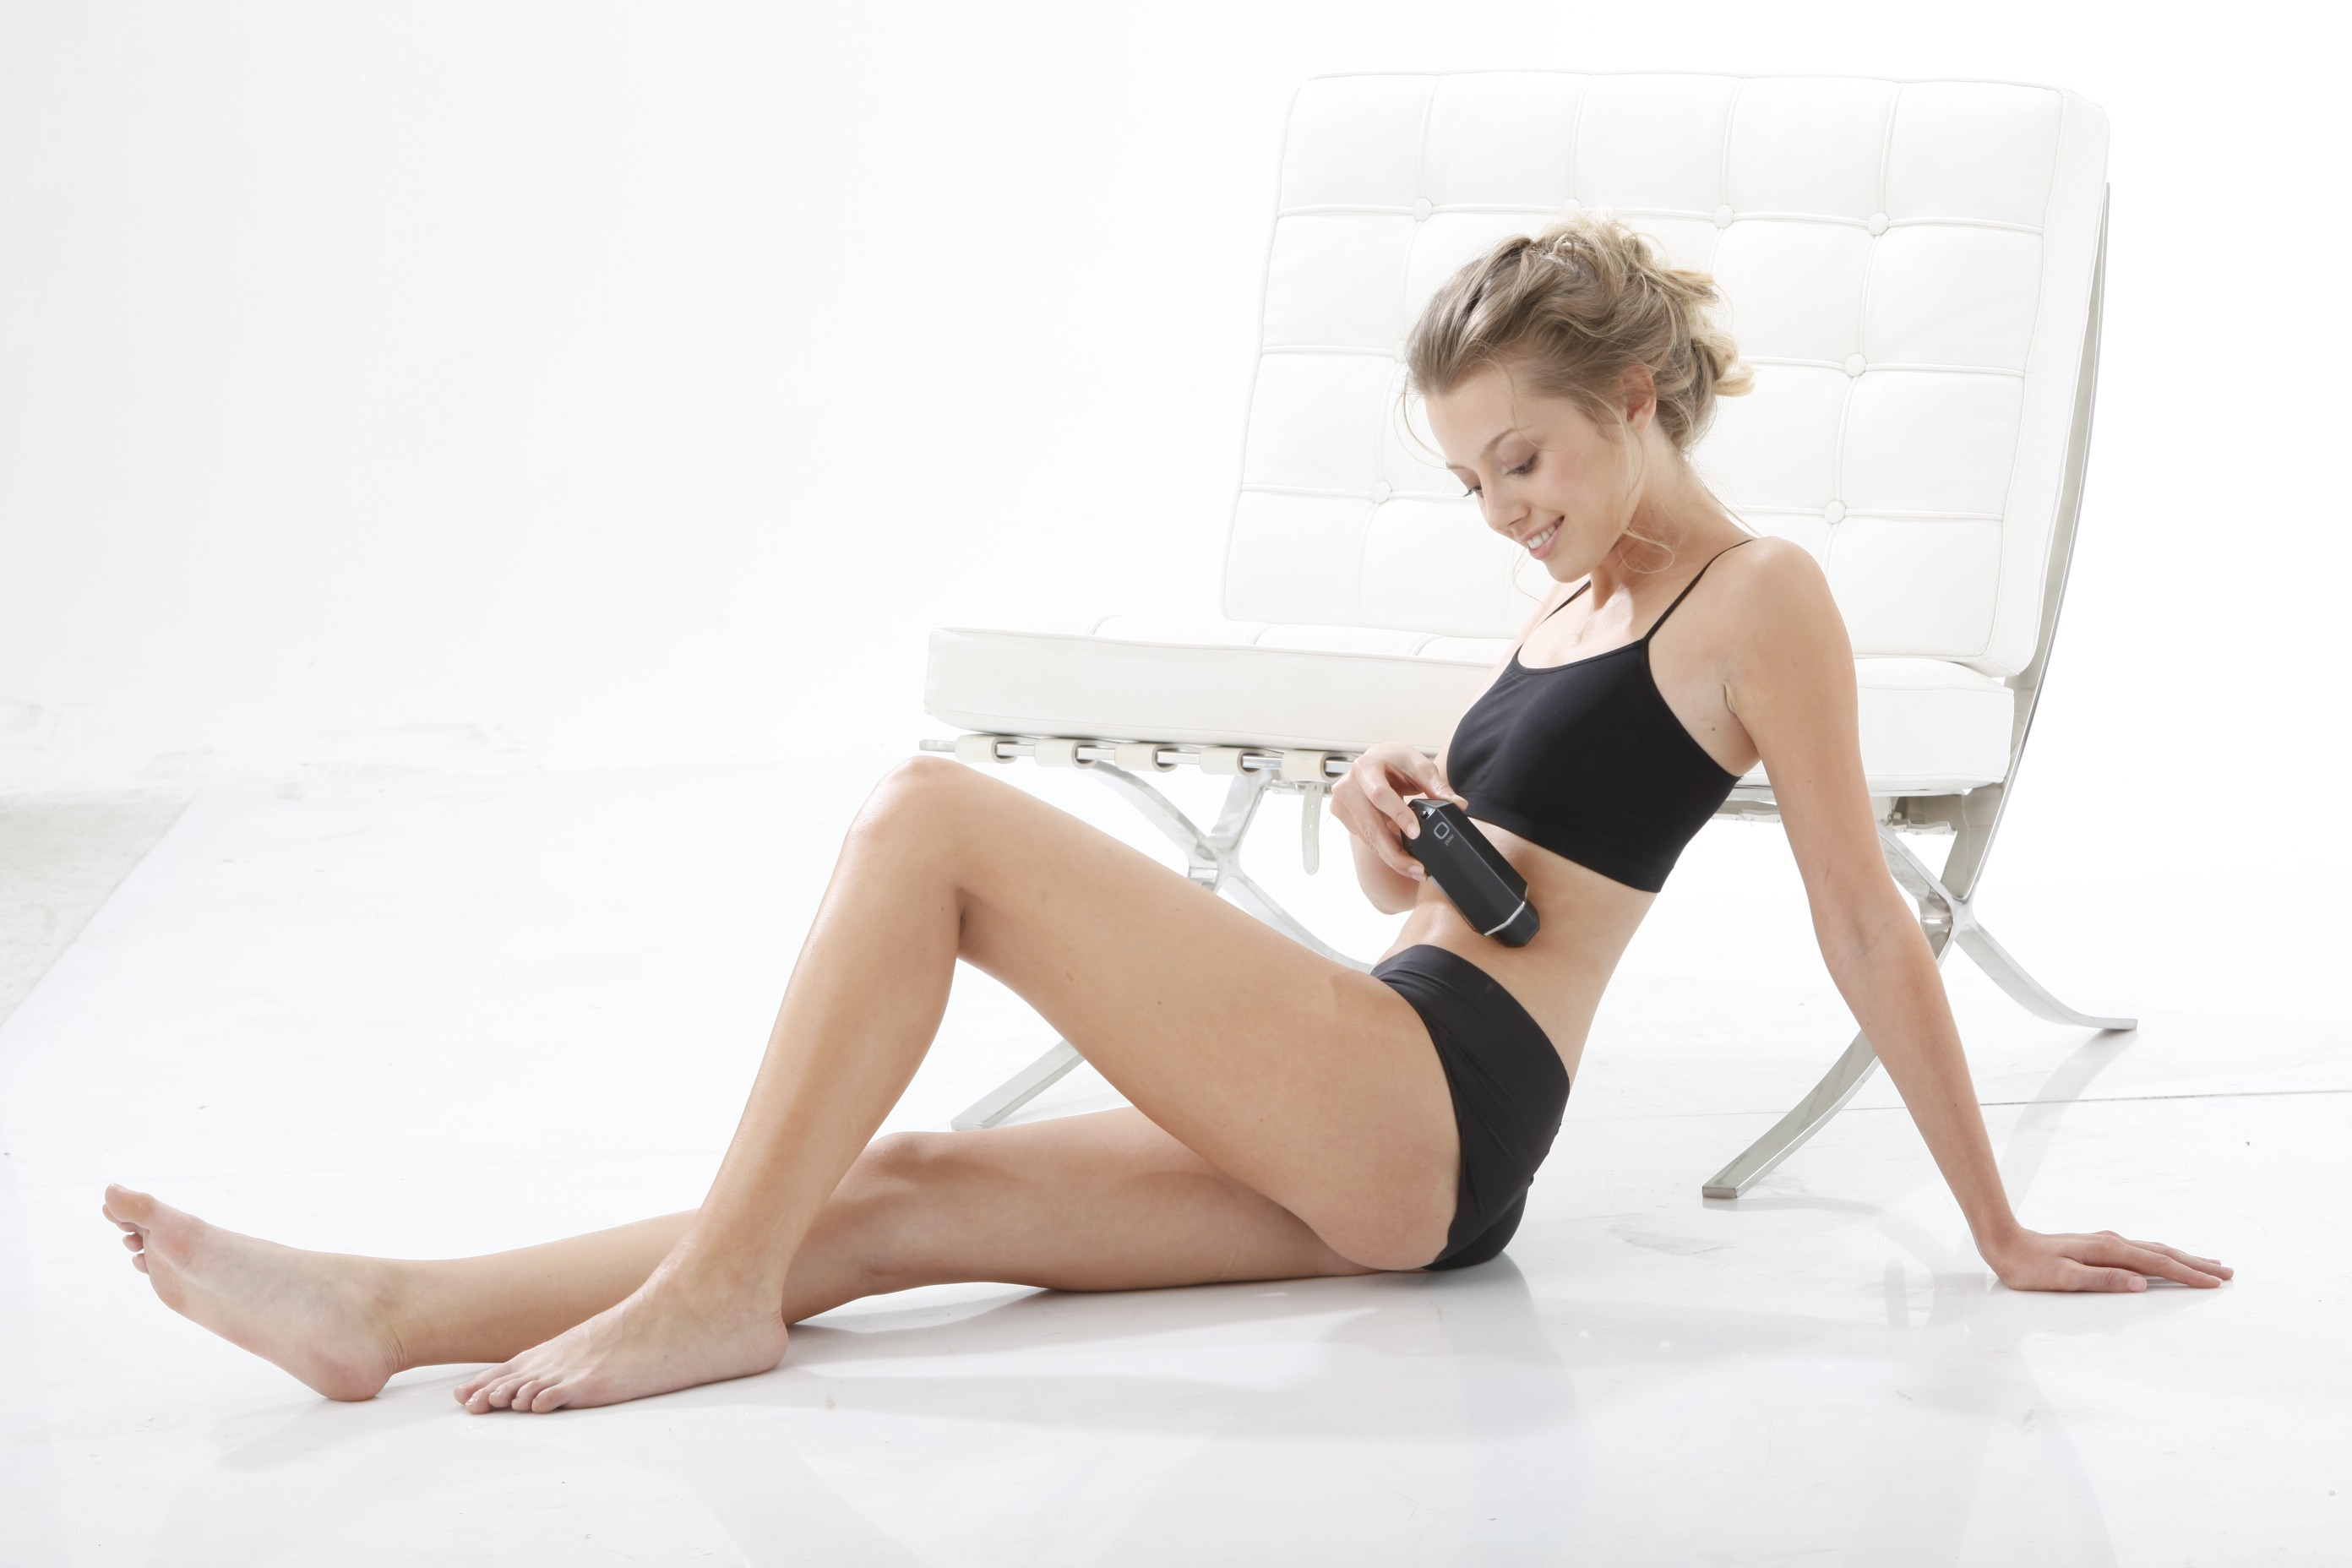 women use Aesthetic medical devices